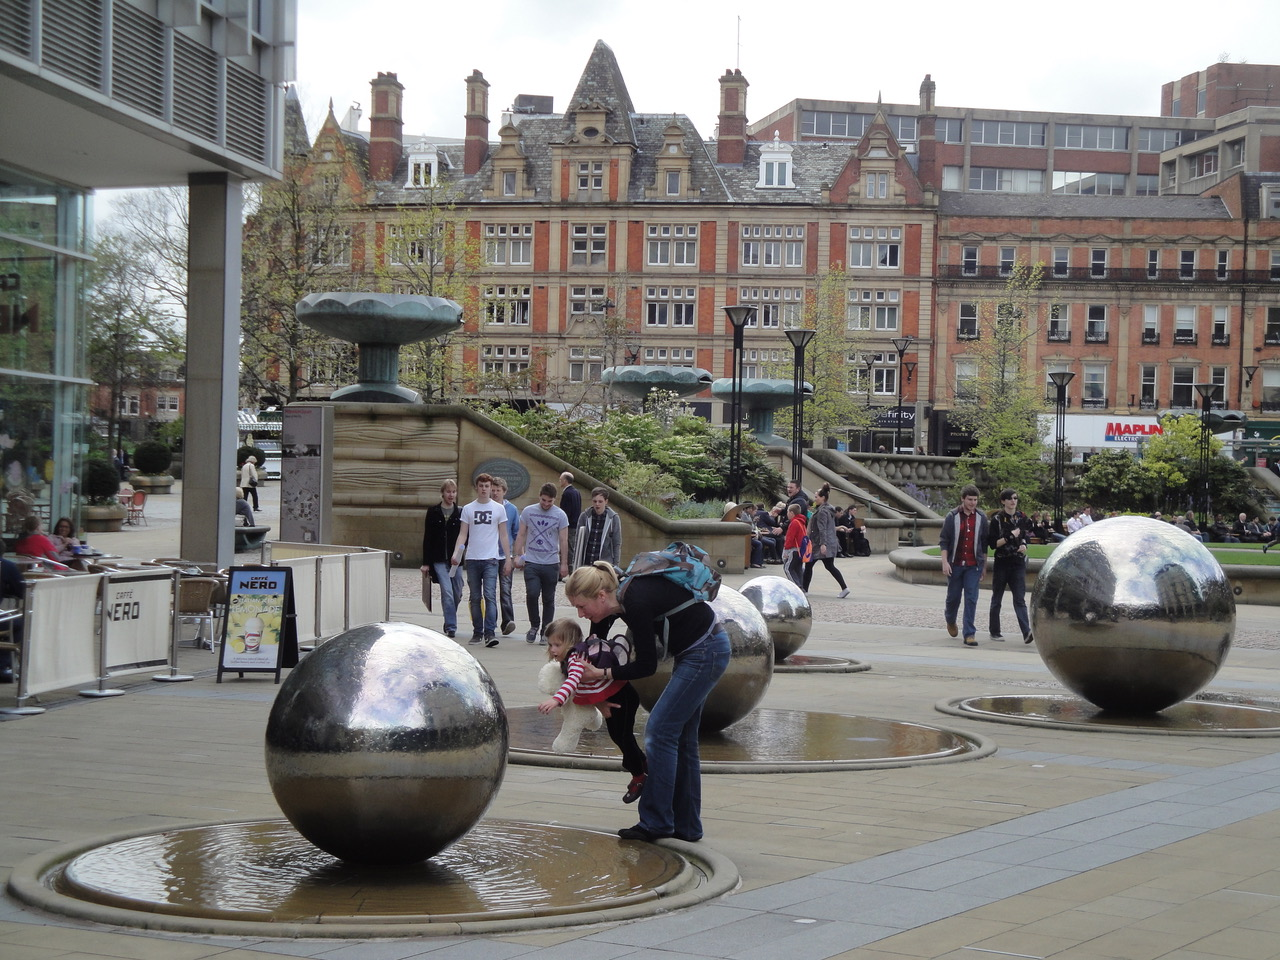 The delight and curiosity of interacting with water in Sheffield,a city with an integrated urban water plan. Photo credit: Jenny Roe.